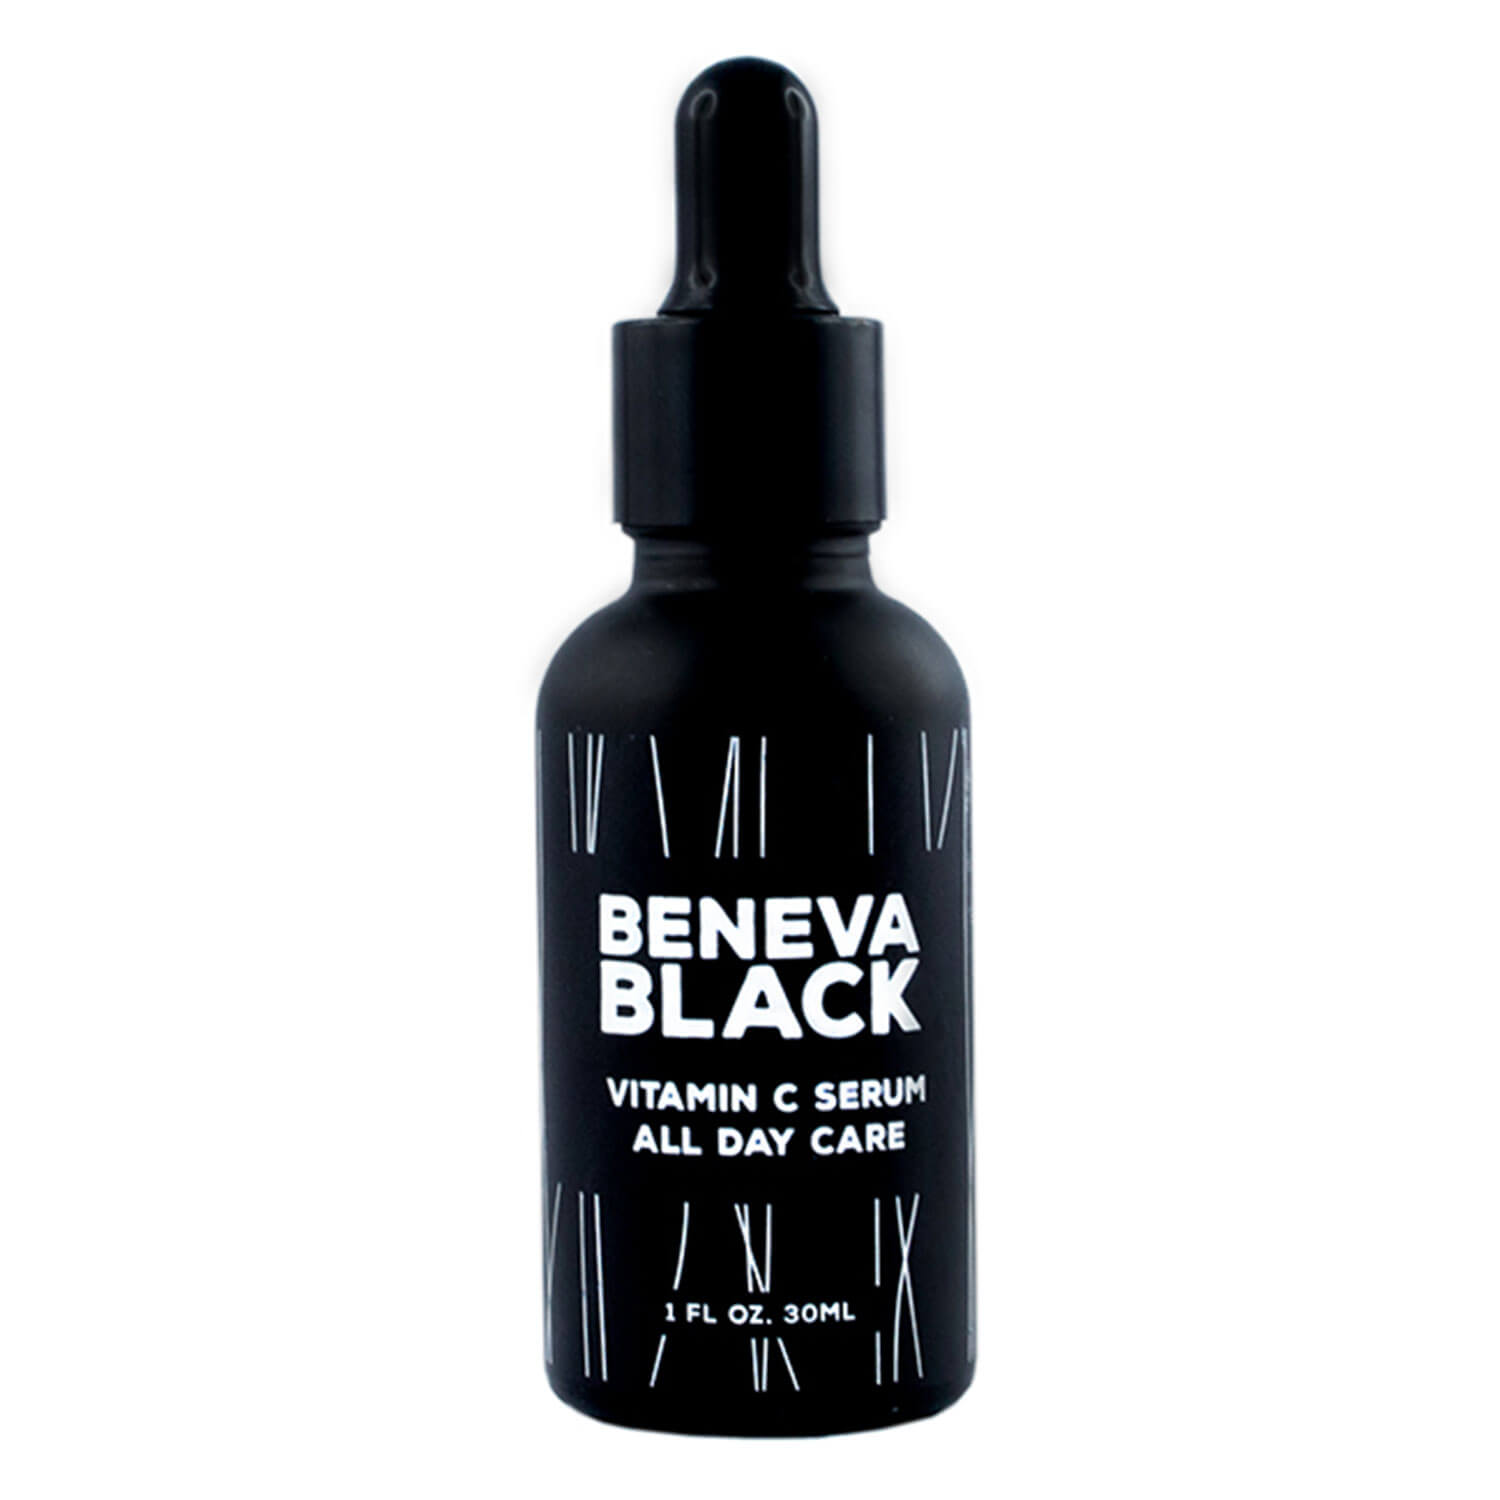 Beneva Black - Vitamin C Serum - 30ml